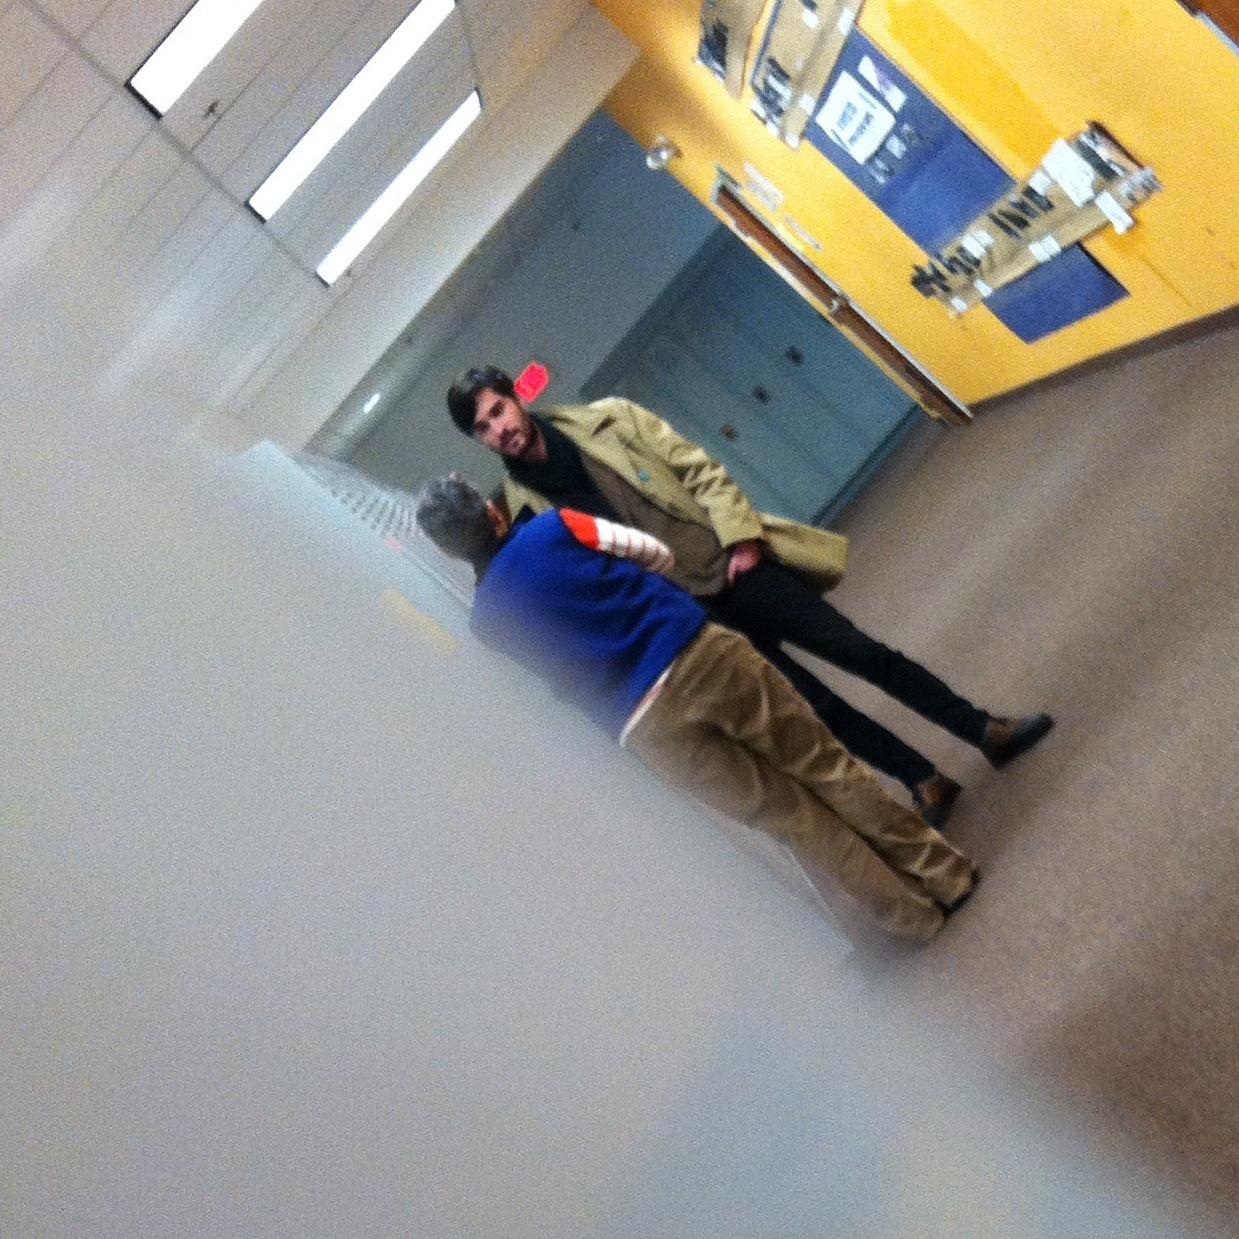 illkim:  partynauseous:  partynauseous:  ThE nEw TeAcHeR iS sOoO hOt  IM SUCH A FUCKING STALKER   Are you in a fucking locker